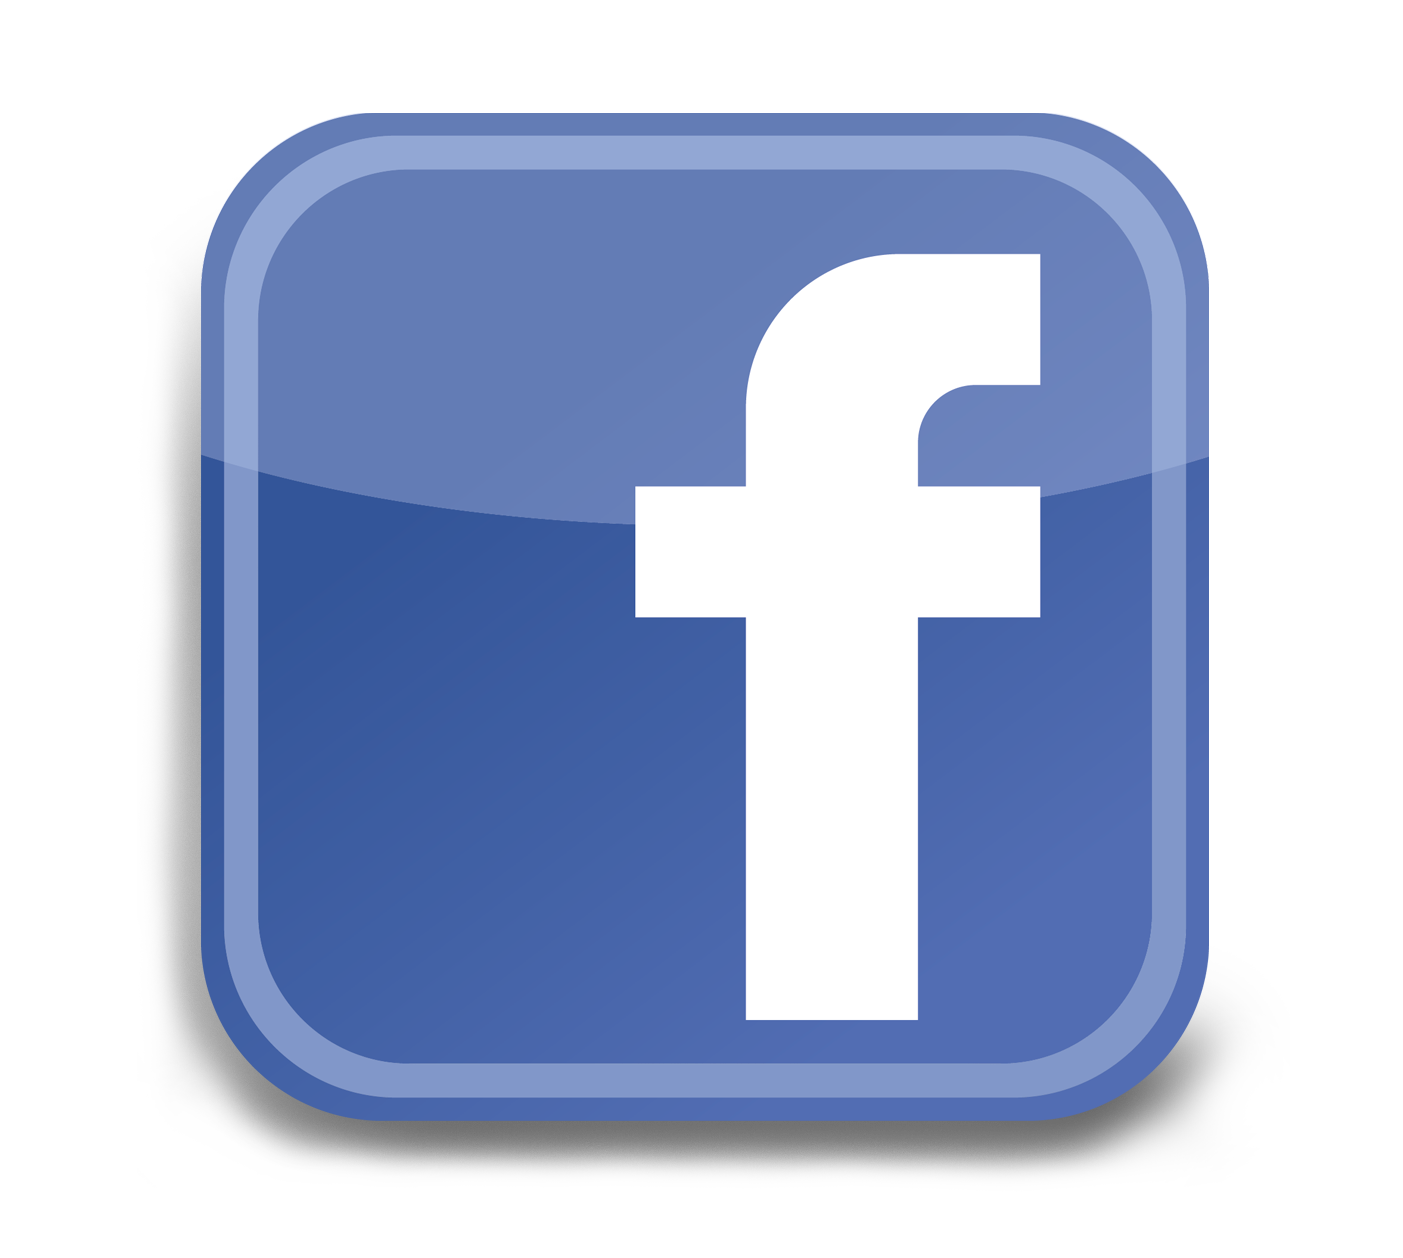 Image result for transparent facebook icon 2019